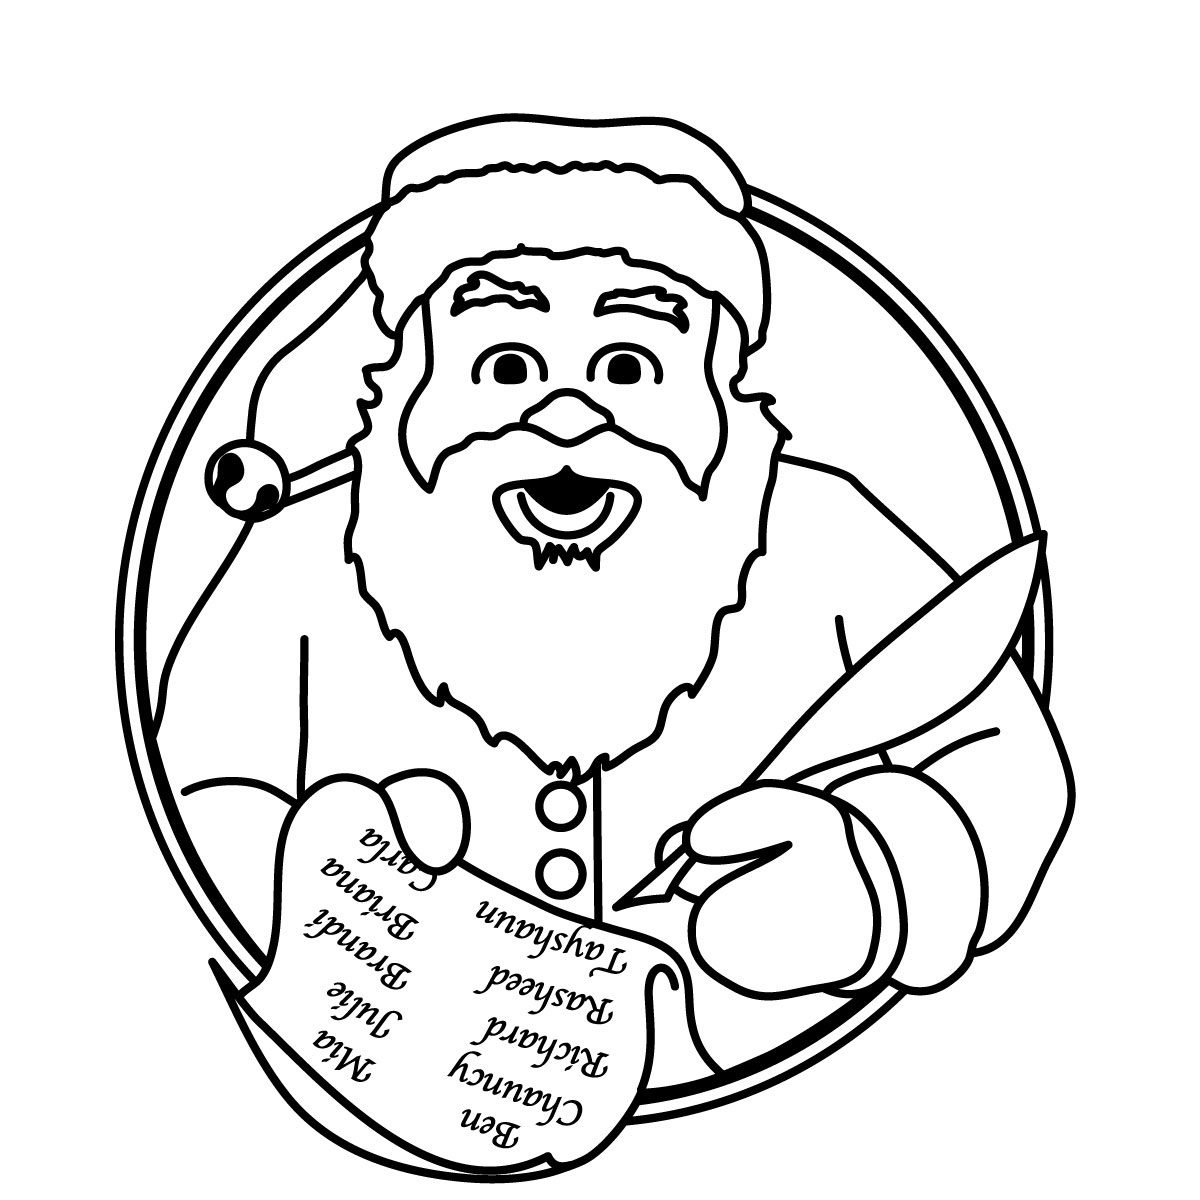 Xmas Stuff For > Merry Christmas Border Clipart Black And White